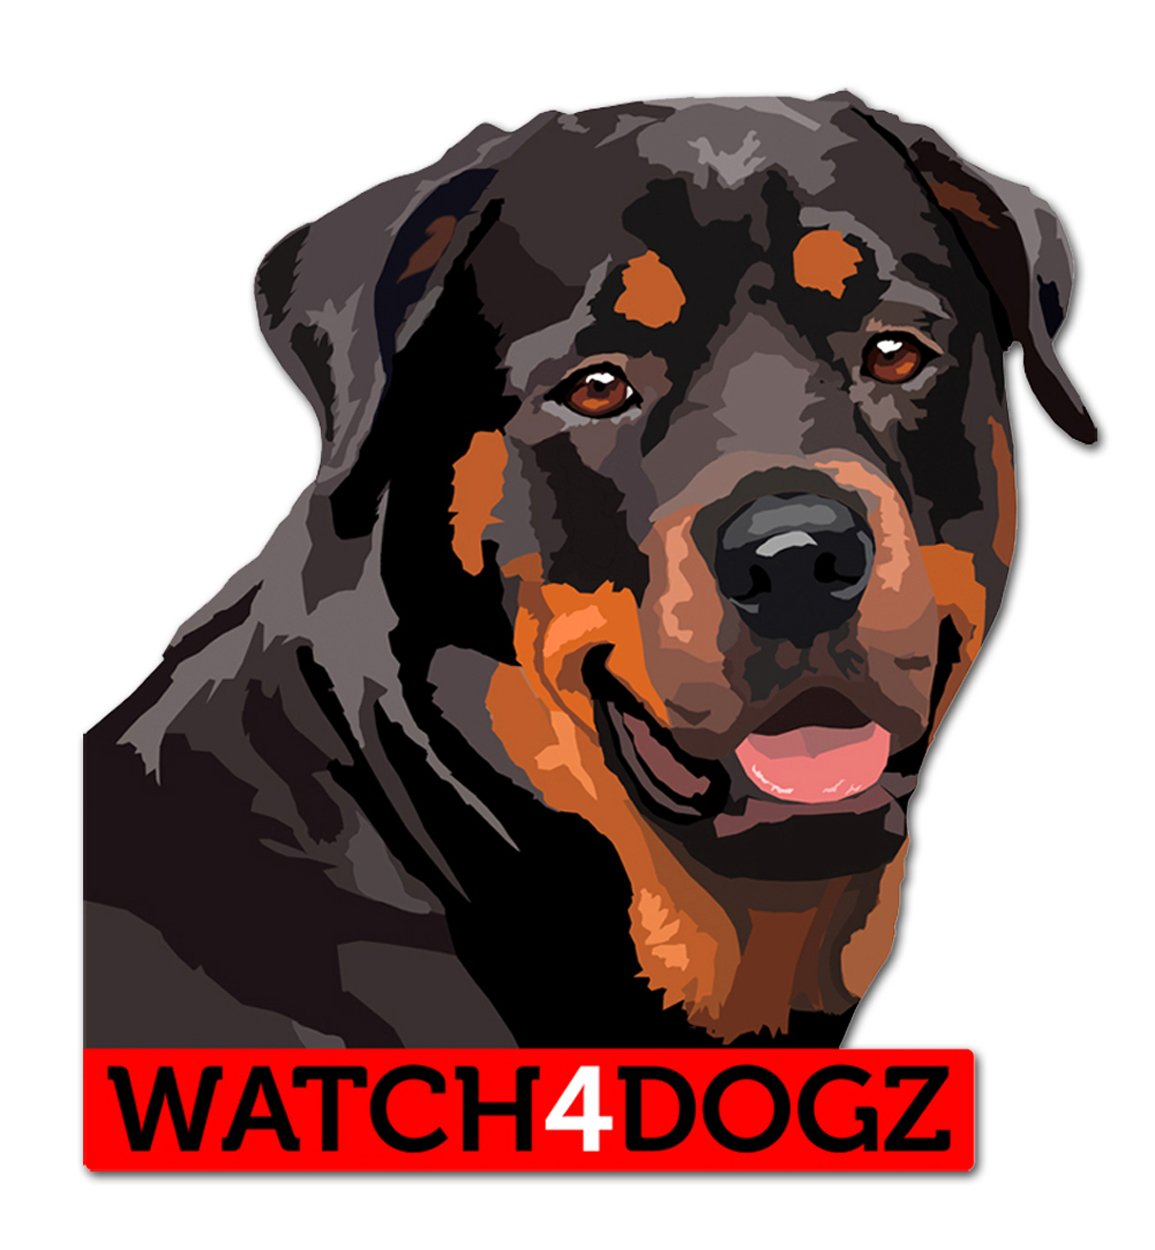 Rottweiler Decal Sticker 10 x 11.5 cm Pack of 2